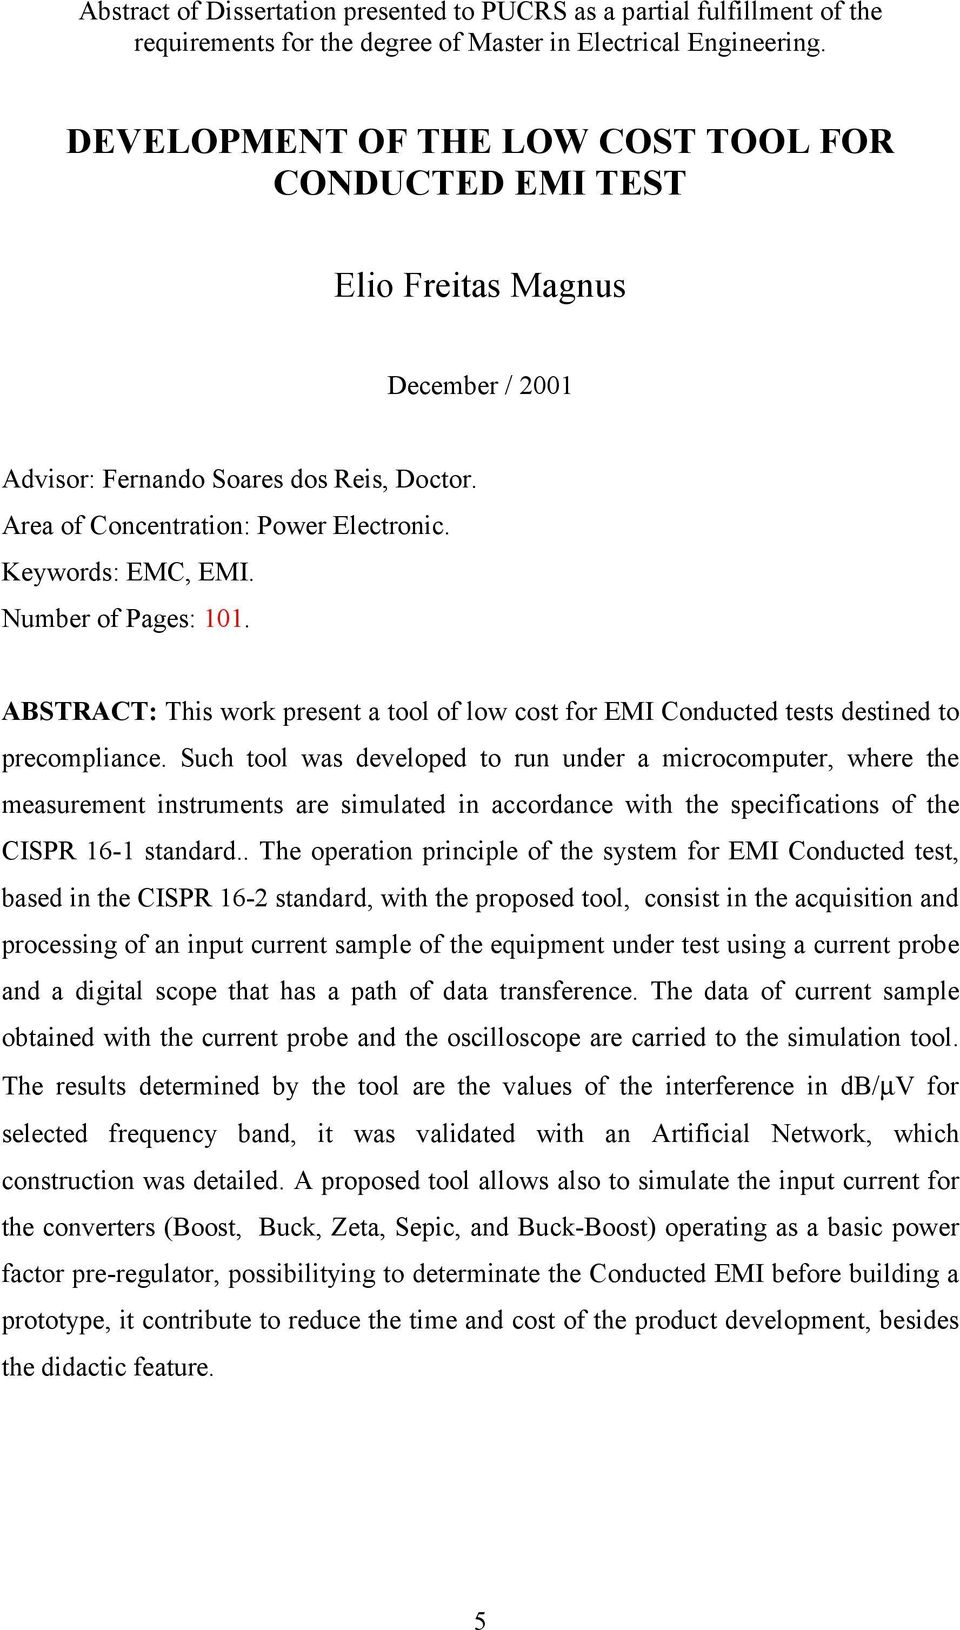 Number of Pages: 101. ABSTRACT: This work present a tool of low cost for EMI Conducted tests destined to precompliance.